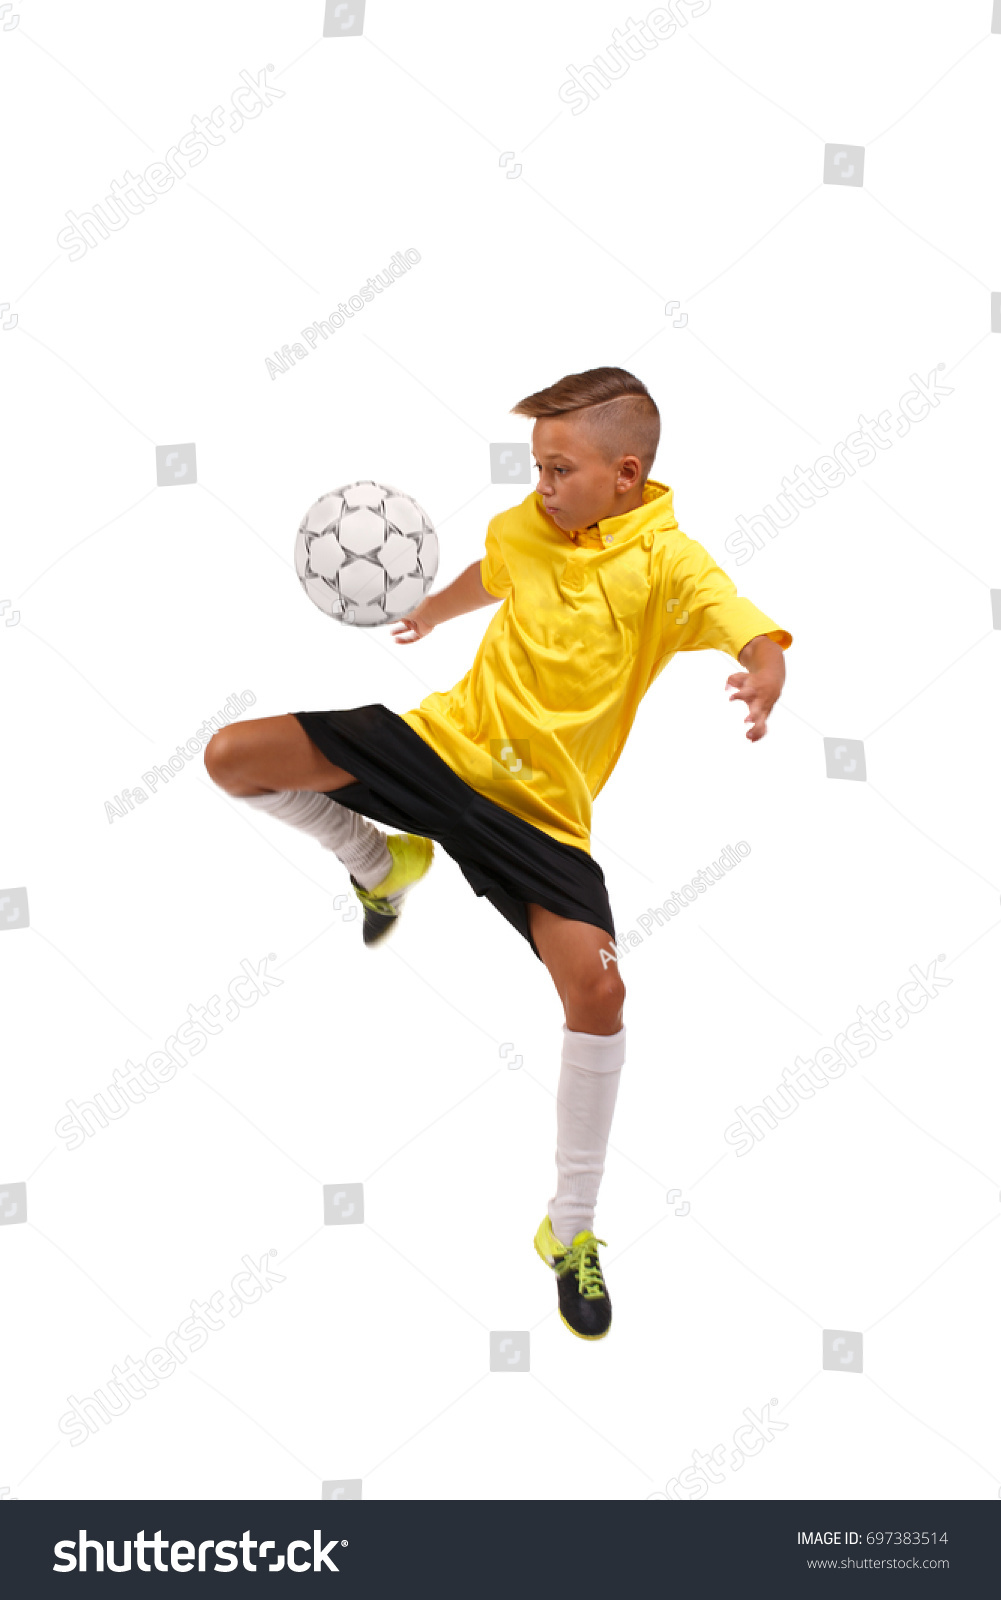 58fa00b61 A sportive boy kicking a soccer ball. A little kid in a football uniform  isolated on a white background. Sports concept. - Image